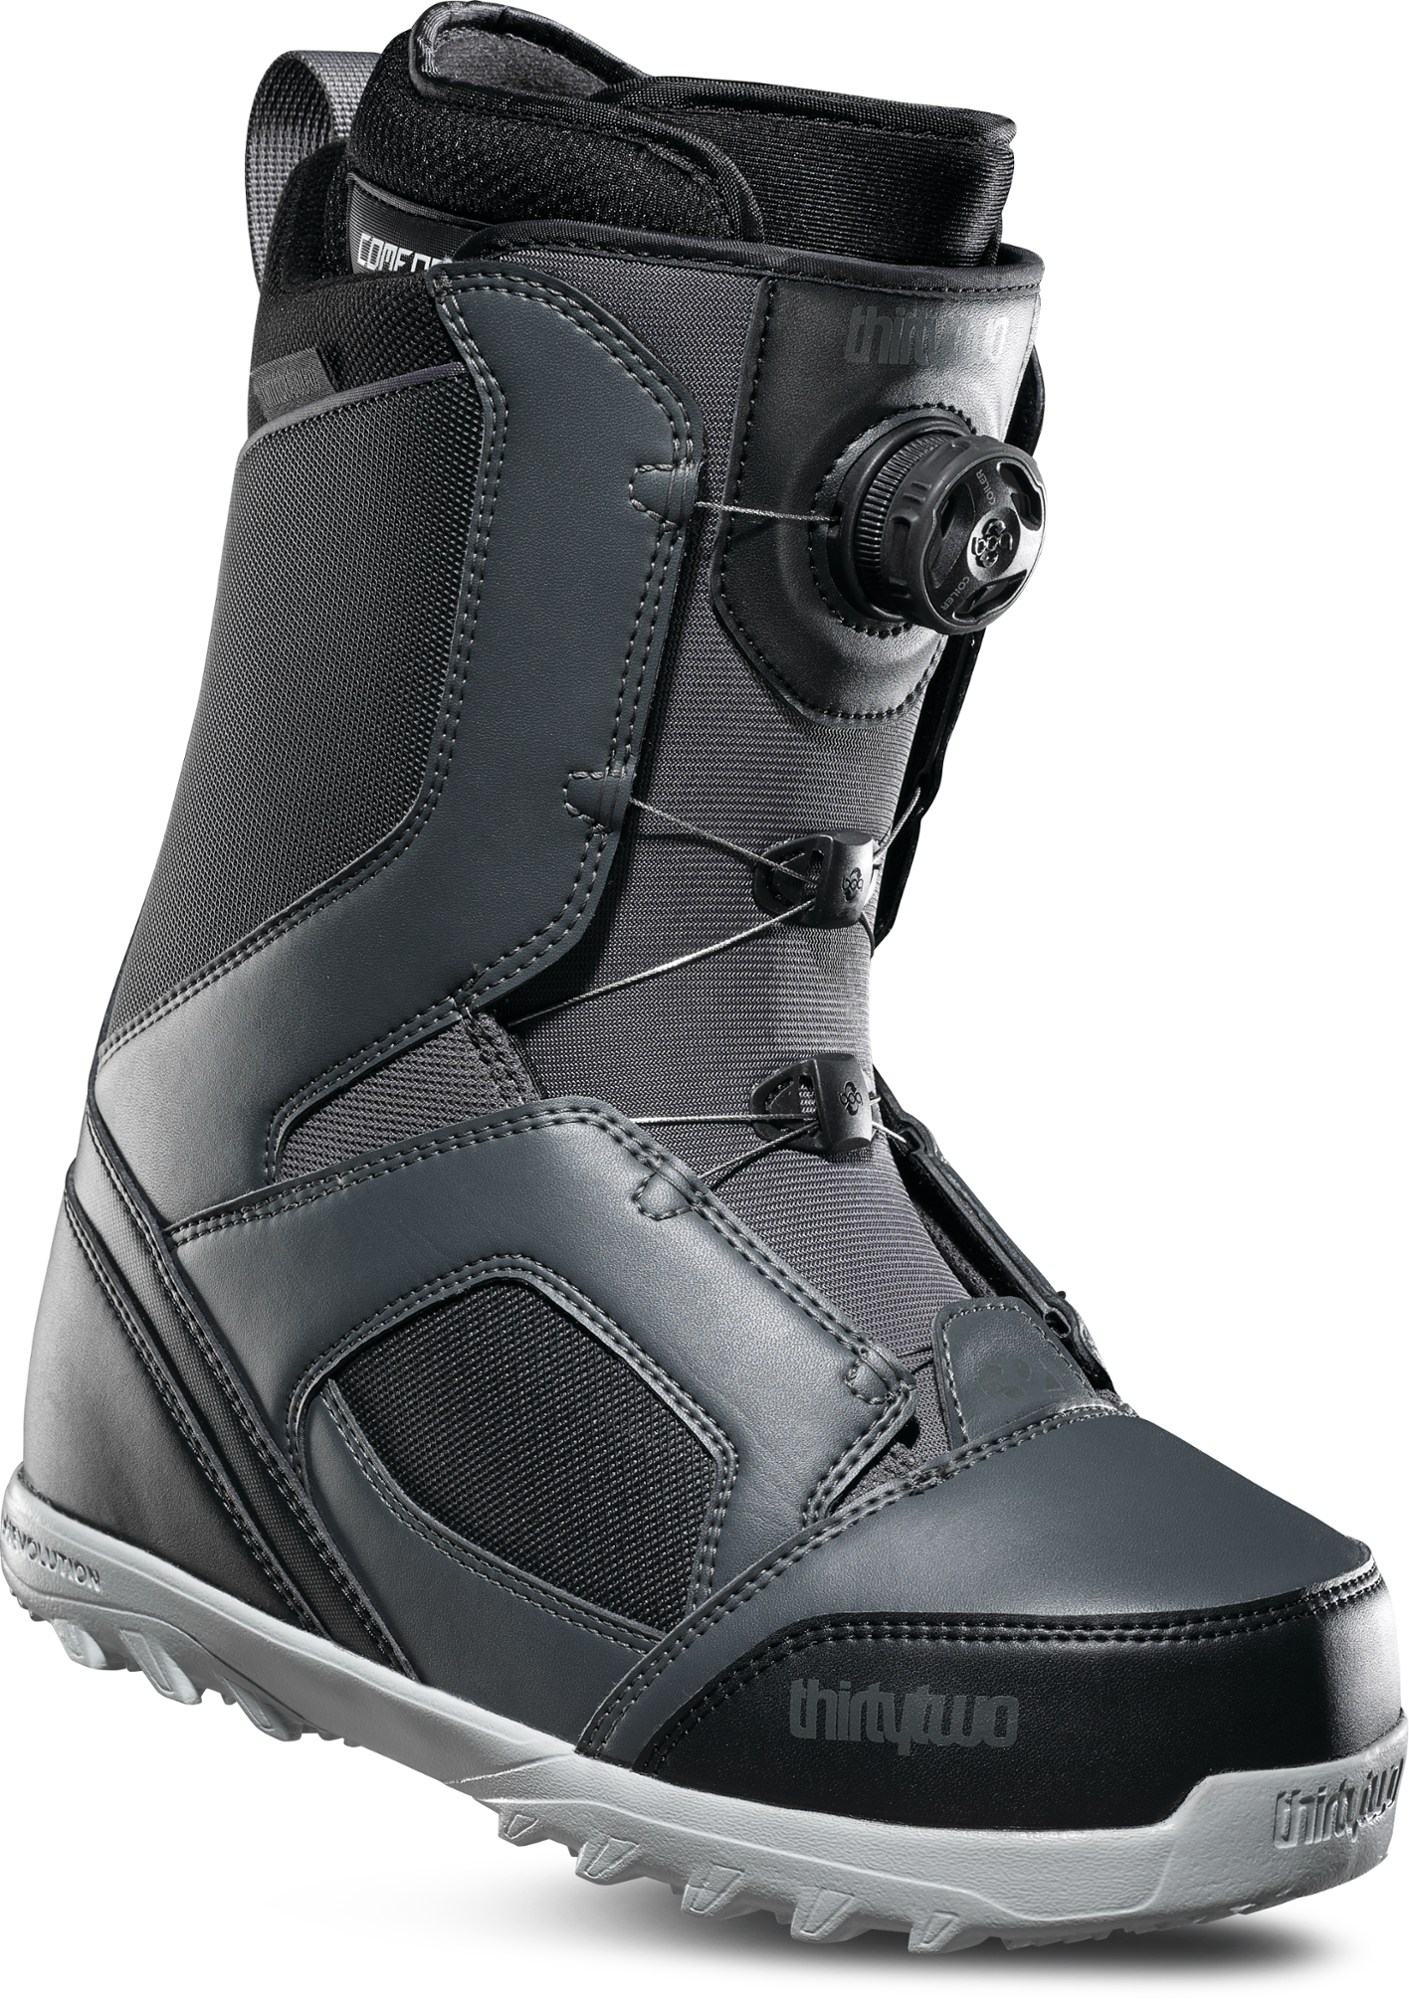 thirtytwo STW Boa Snowboard Boots - Men's - 2018/2019